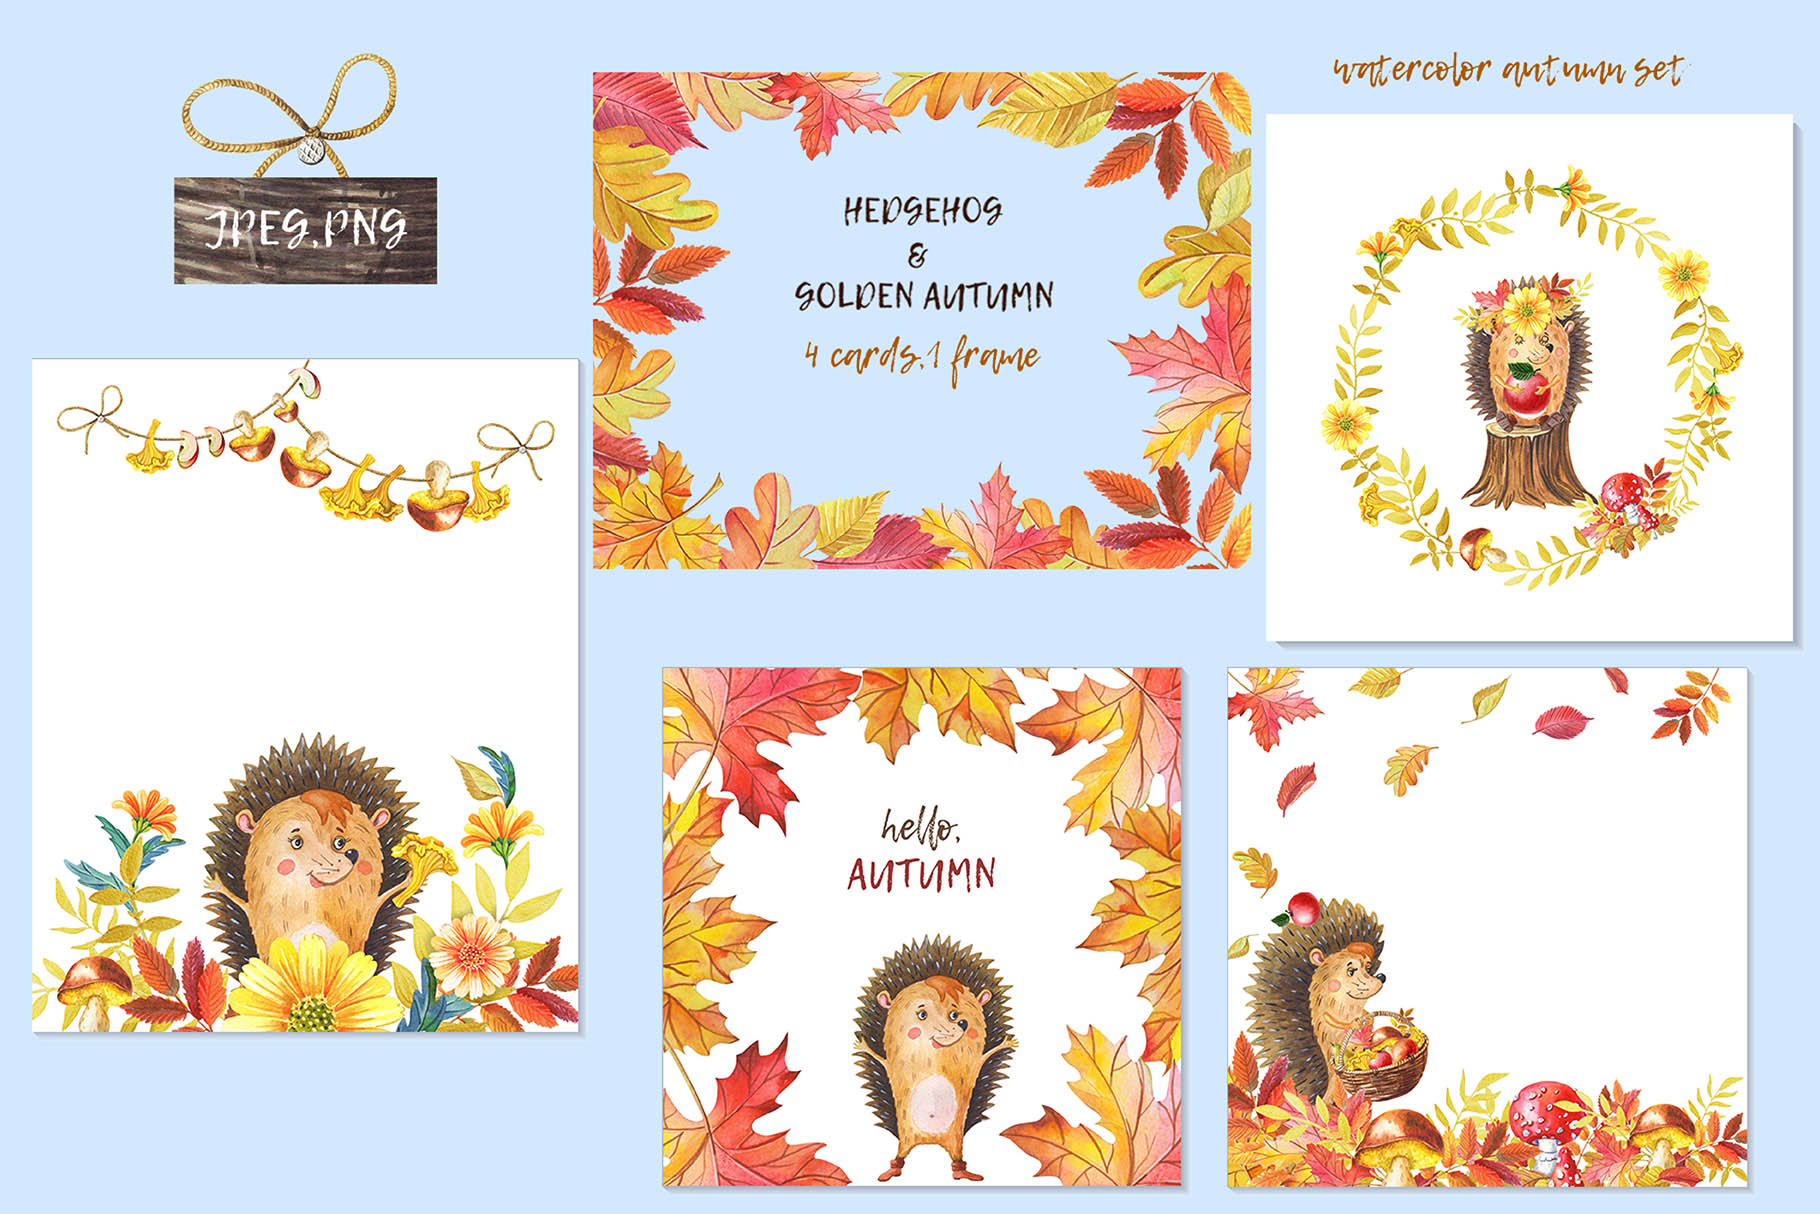 HEDGEHOG & GOLDEN AUTUMN example image 4